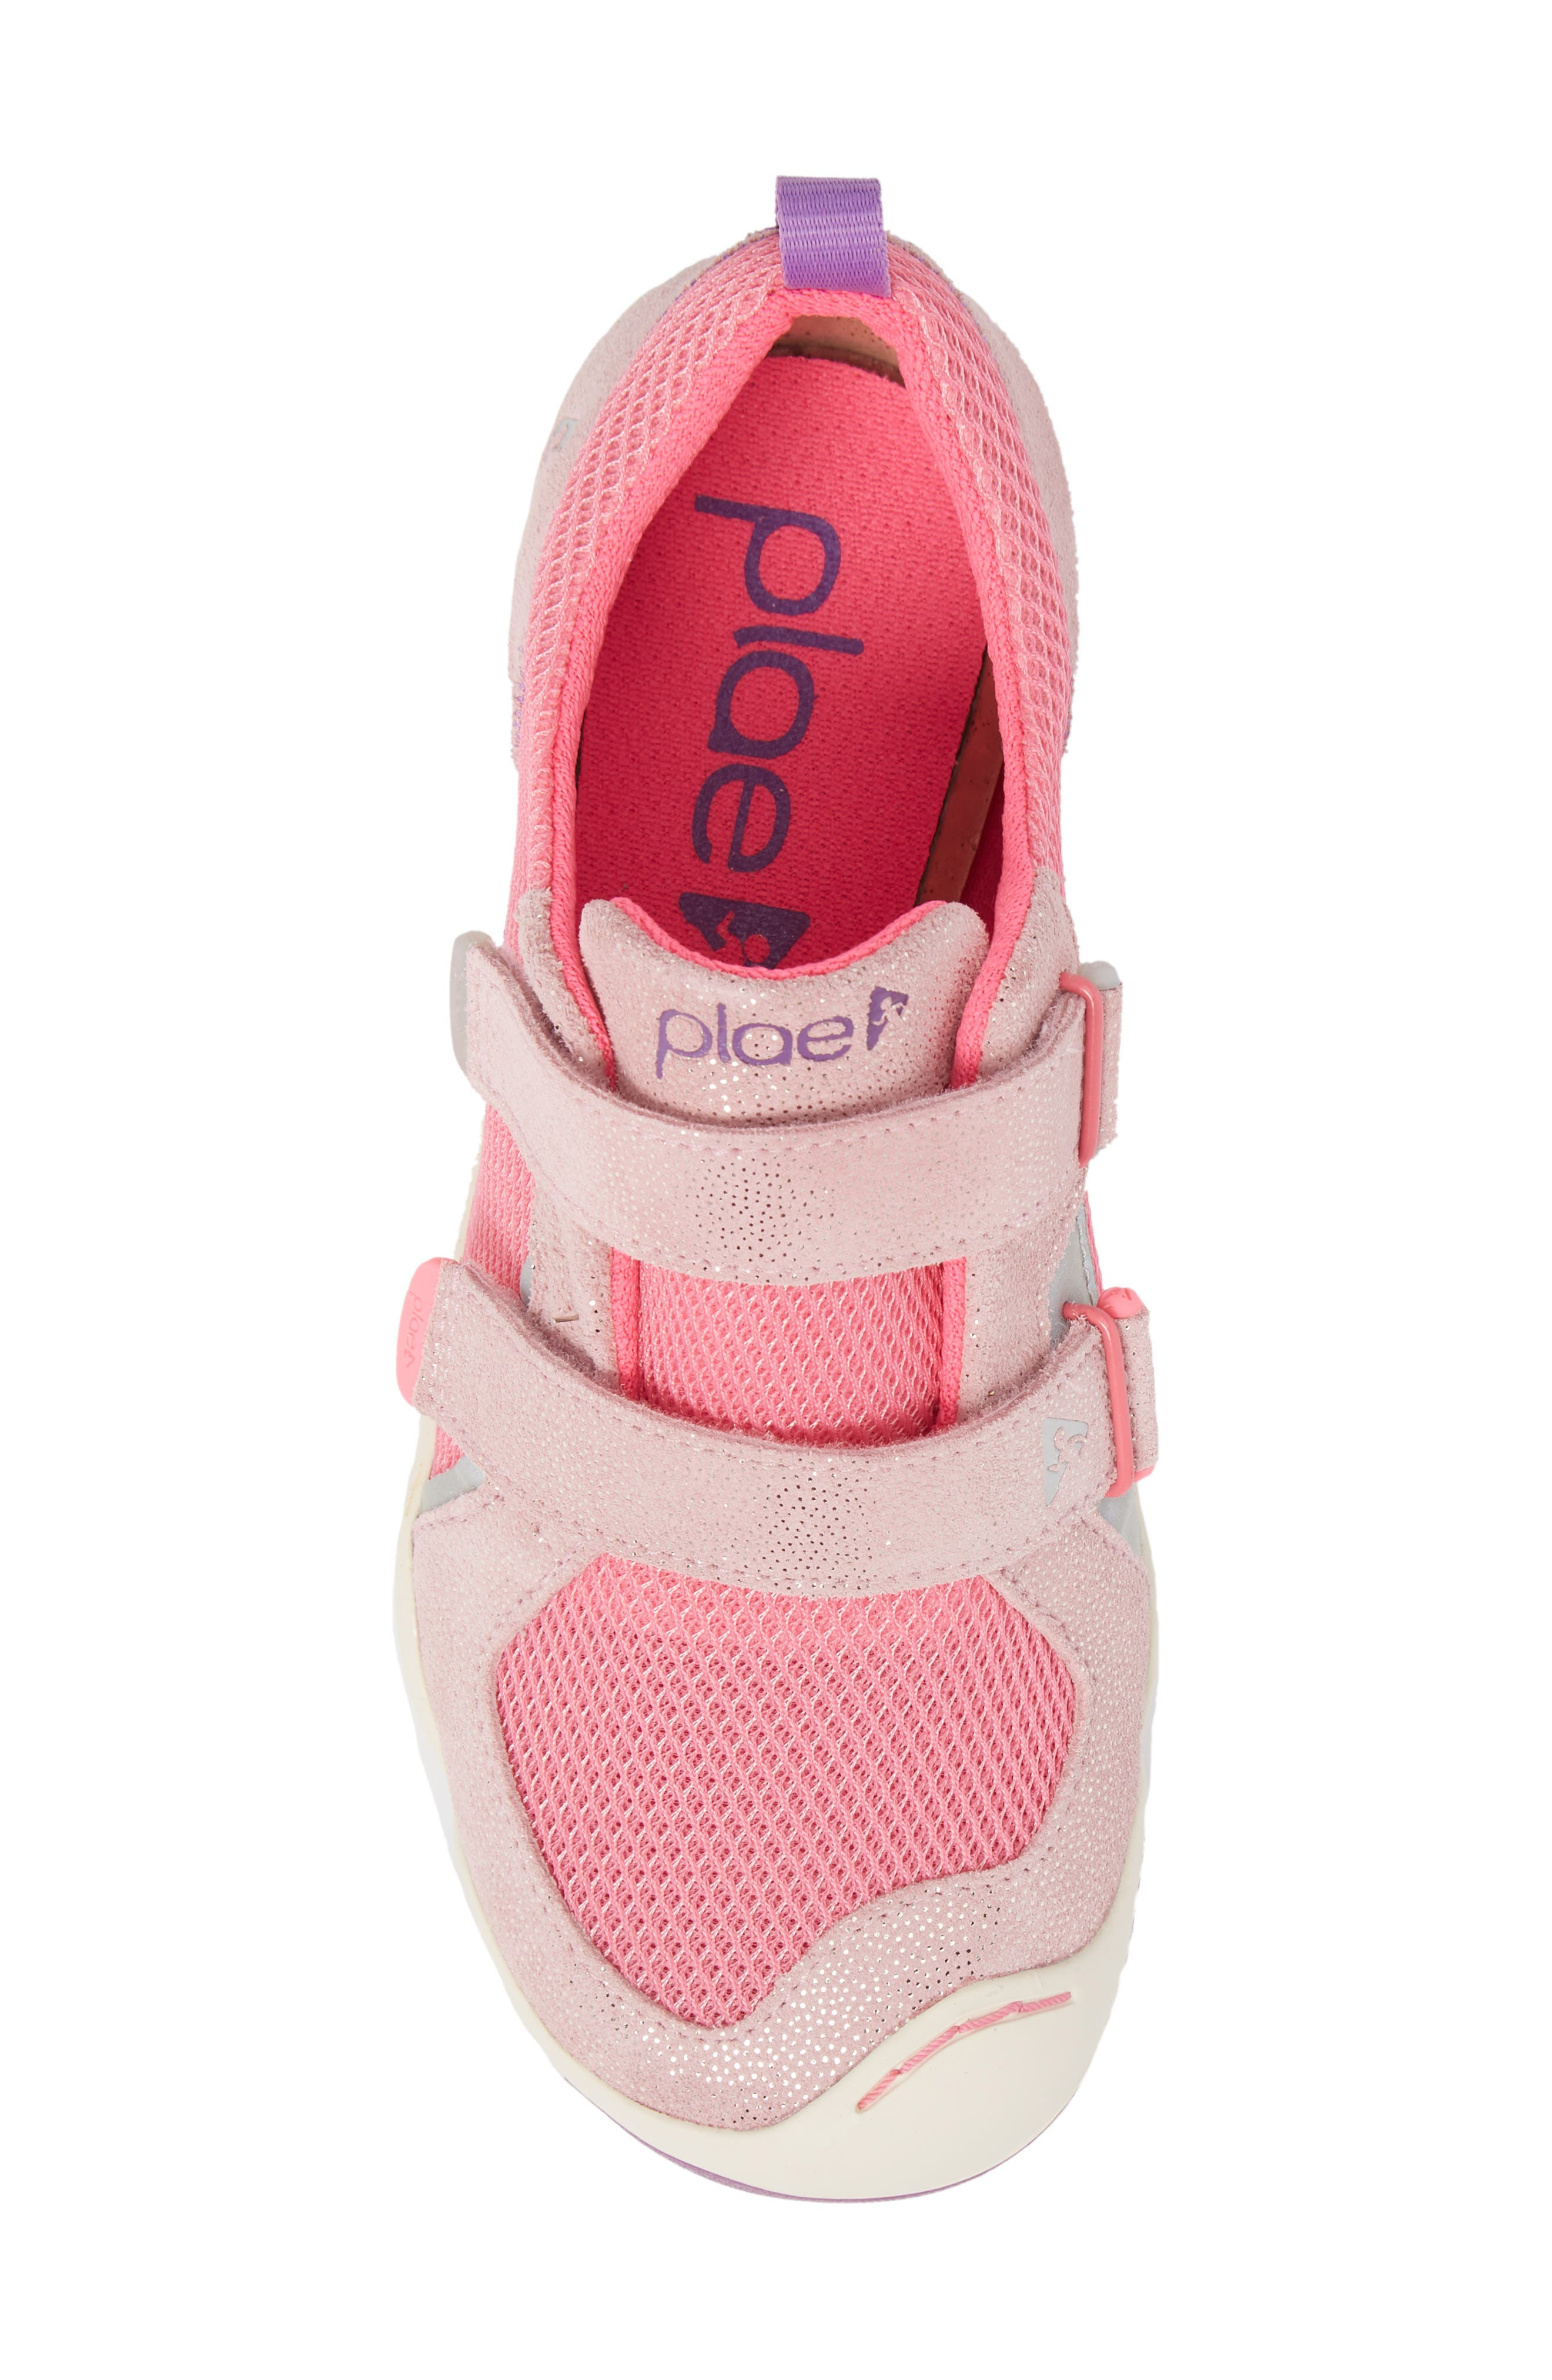 PLAE,                             'Ty' Customizable Sneaker,                             Alternate thumbnail 5, color,                             PINK/ PINK/ DEWBERRY